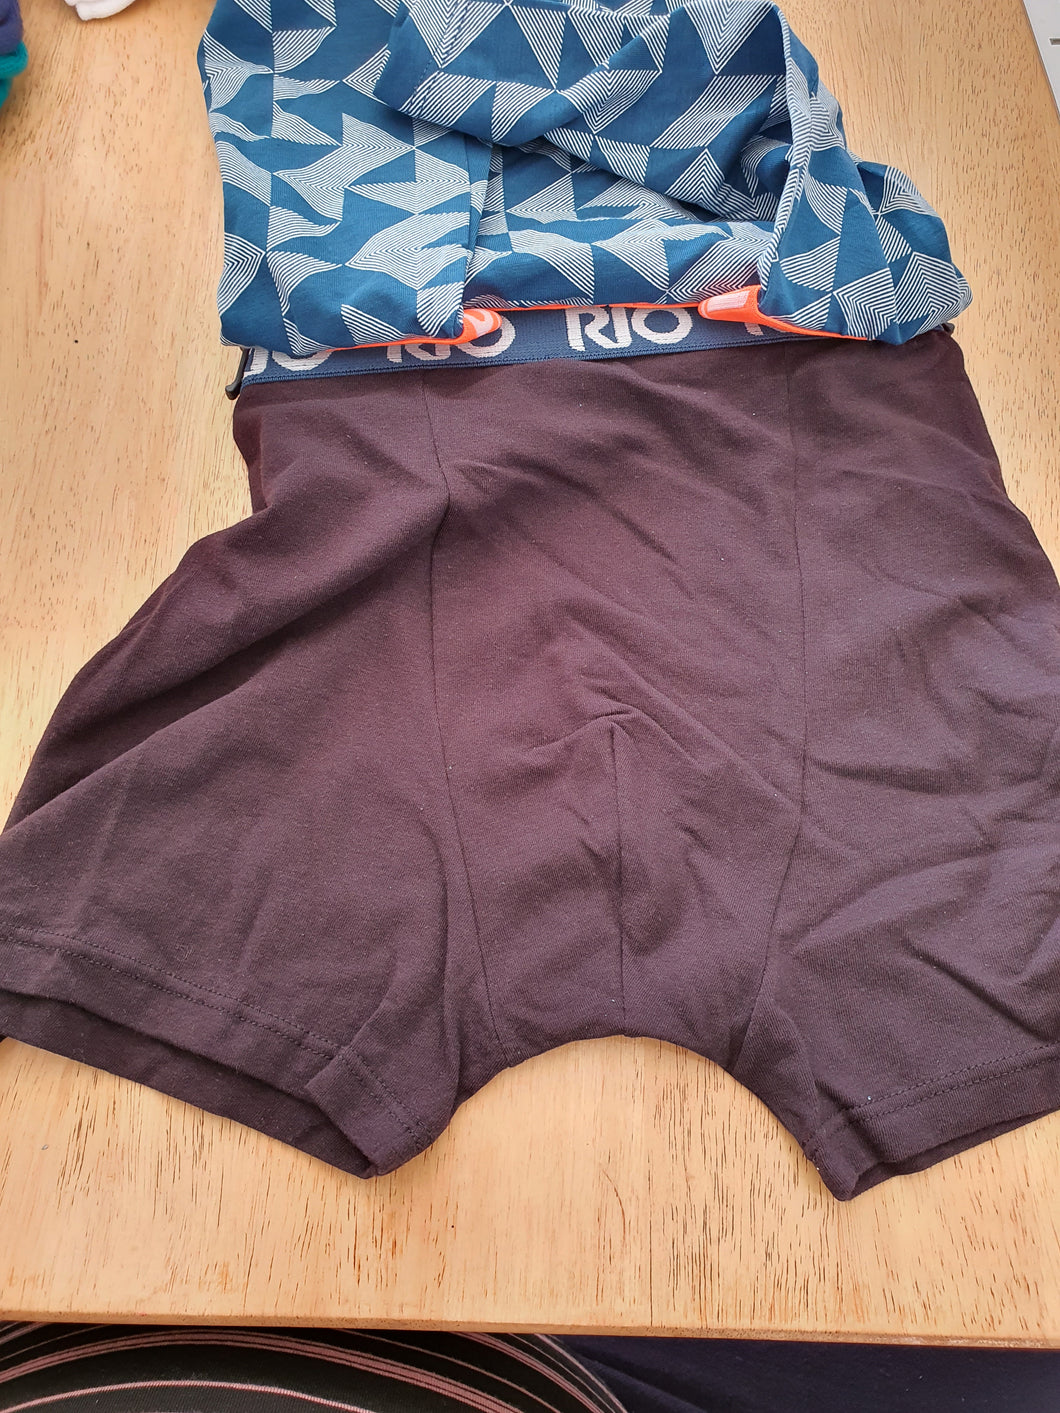 Rio 2pk Men's Trunks